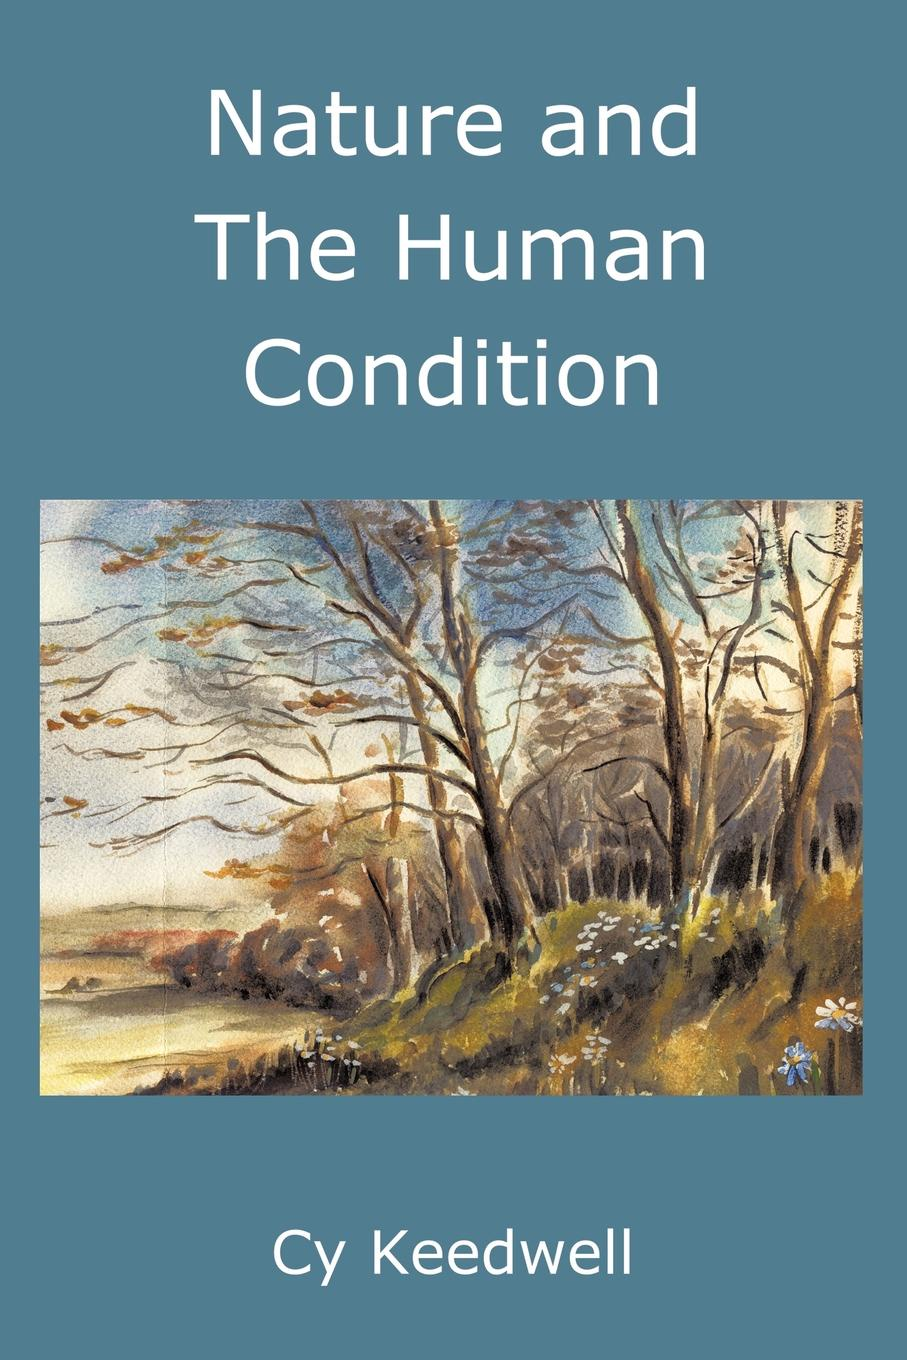 лучшая цена Cy Keedwell Nature and the Human Condition. A Study of Cultural Evolution